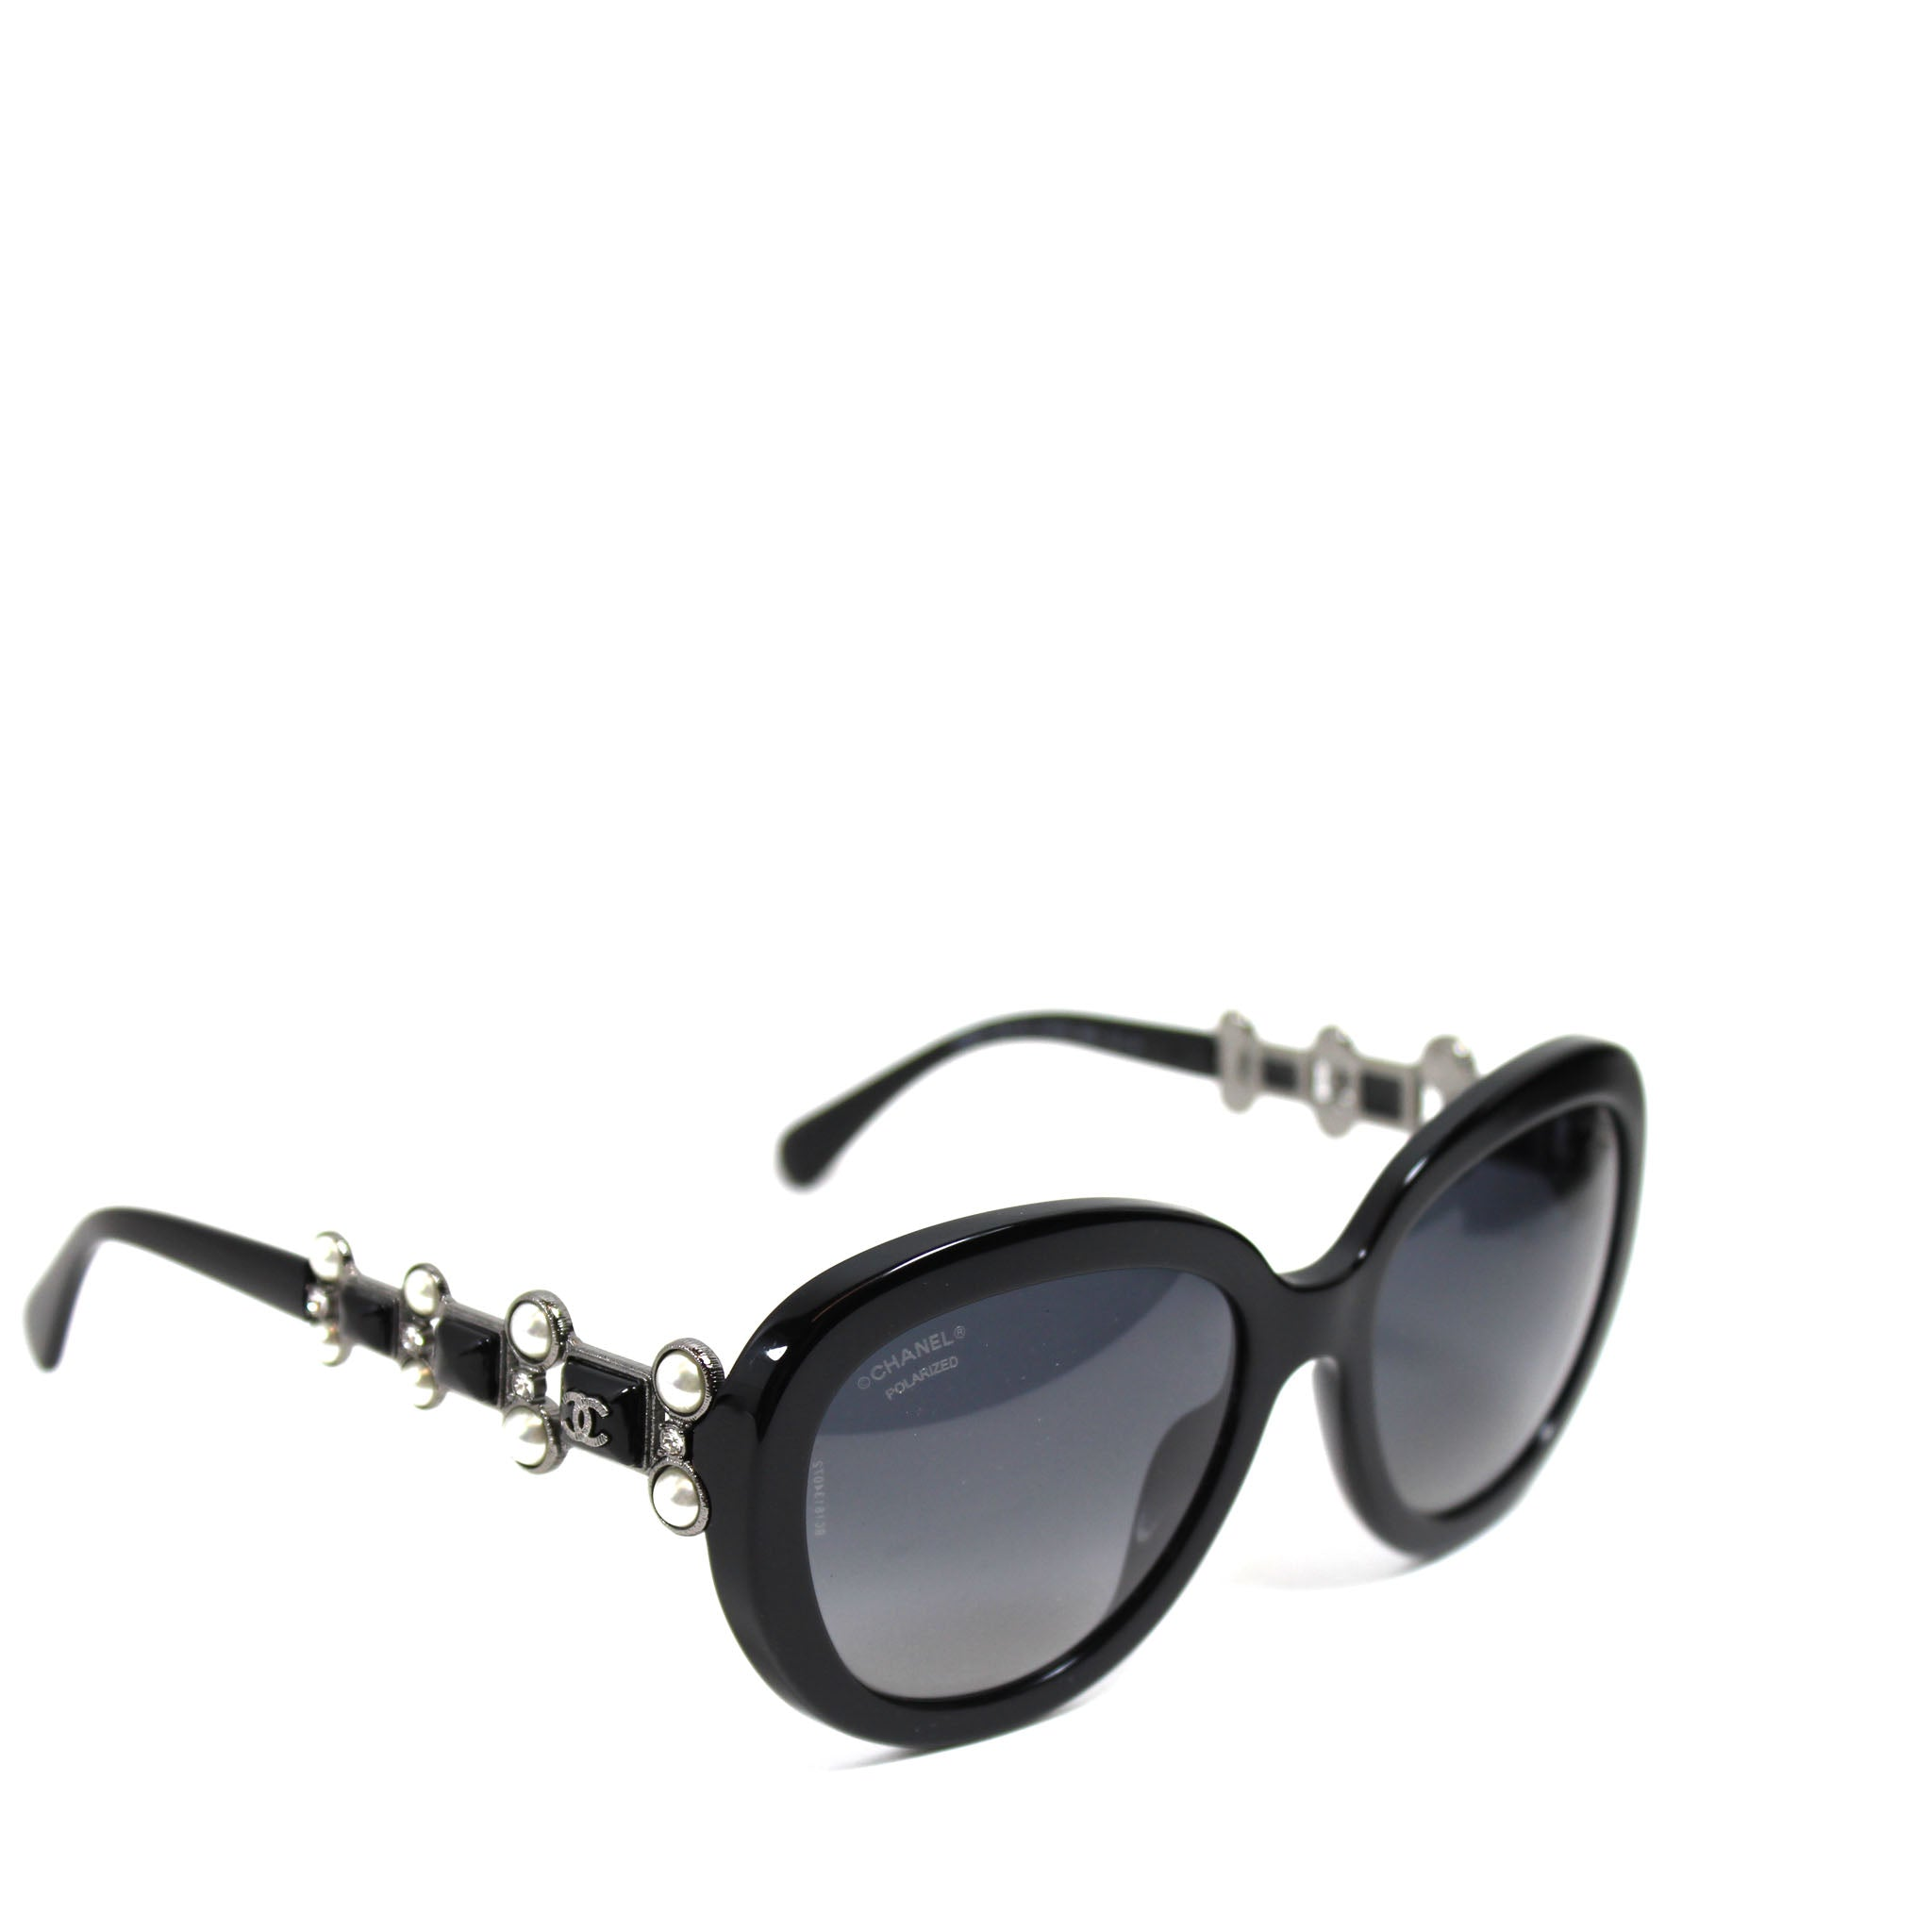 d3929262807ae Chanel Black Acetate Bijoux Pearls Sunglasses - 5334-H-B – Encore  Consignment